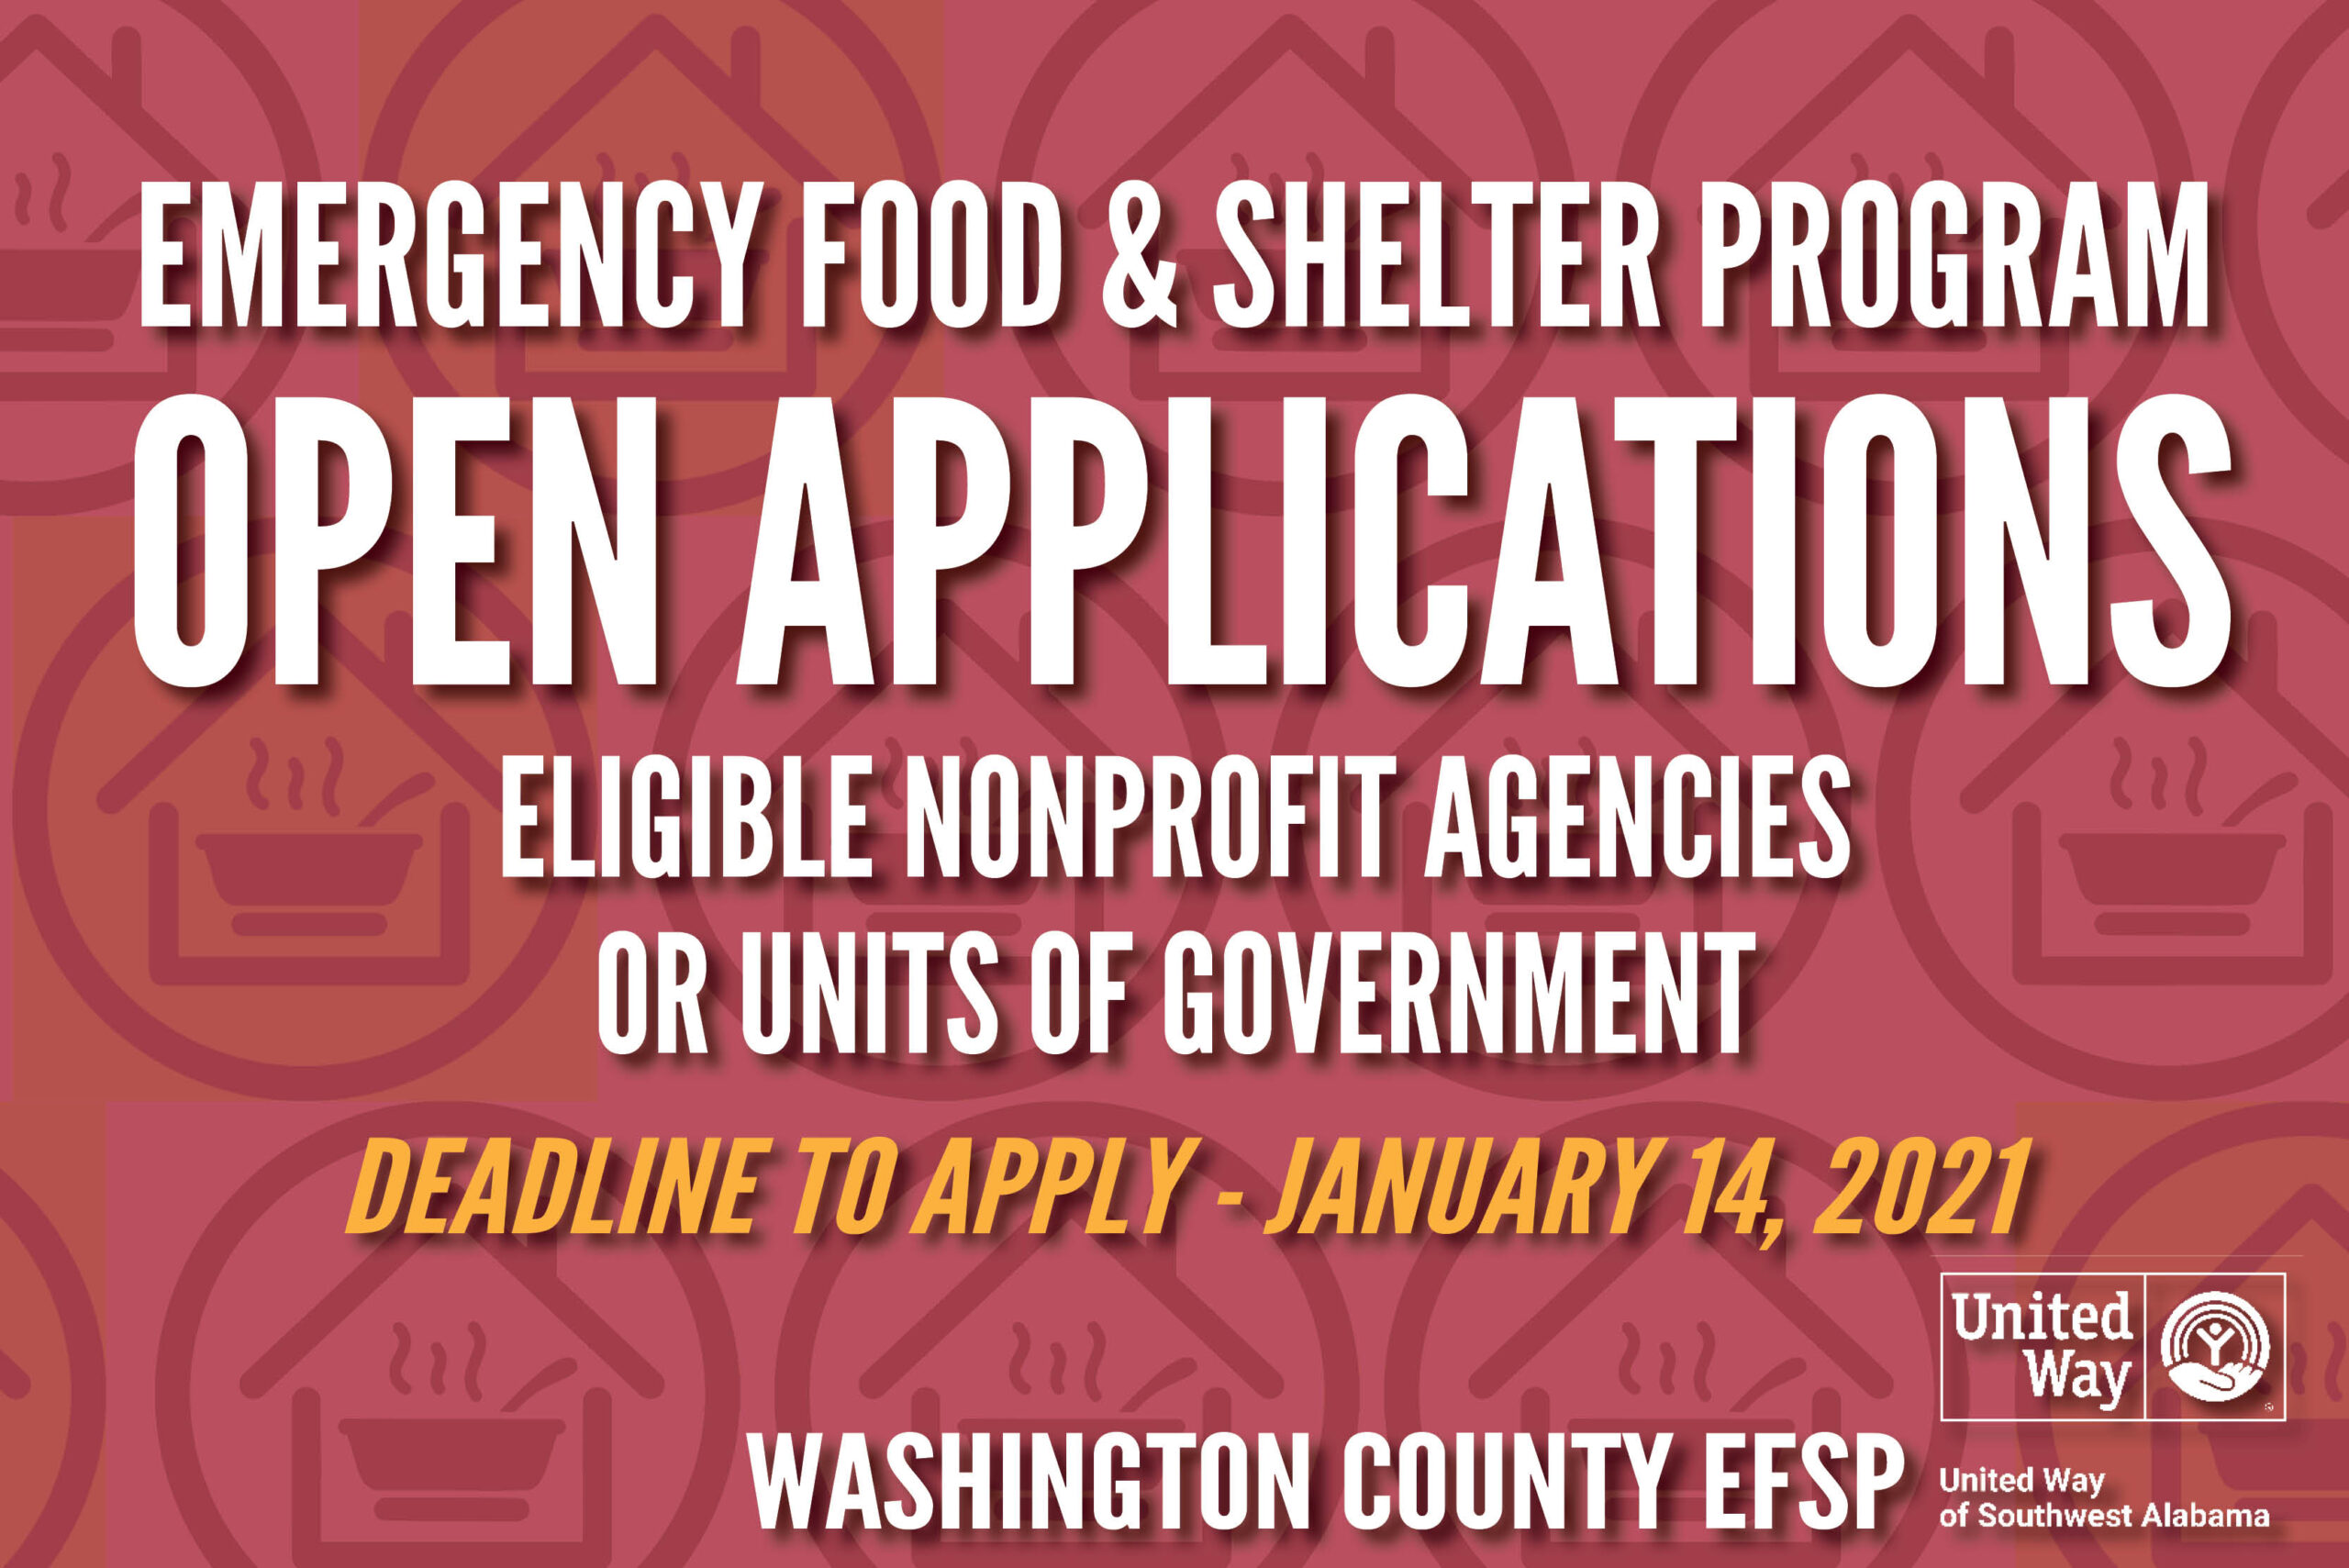 Emergency Food and Shelter Program Open Applications